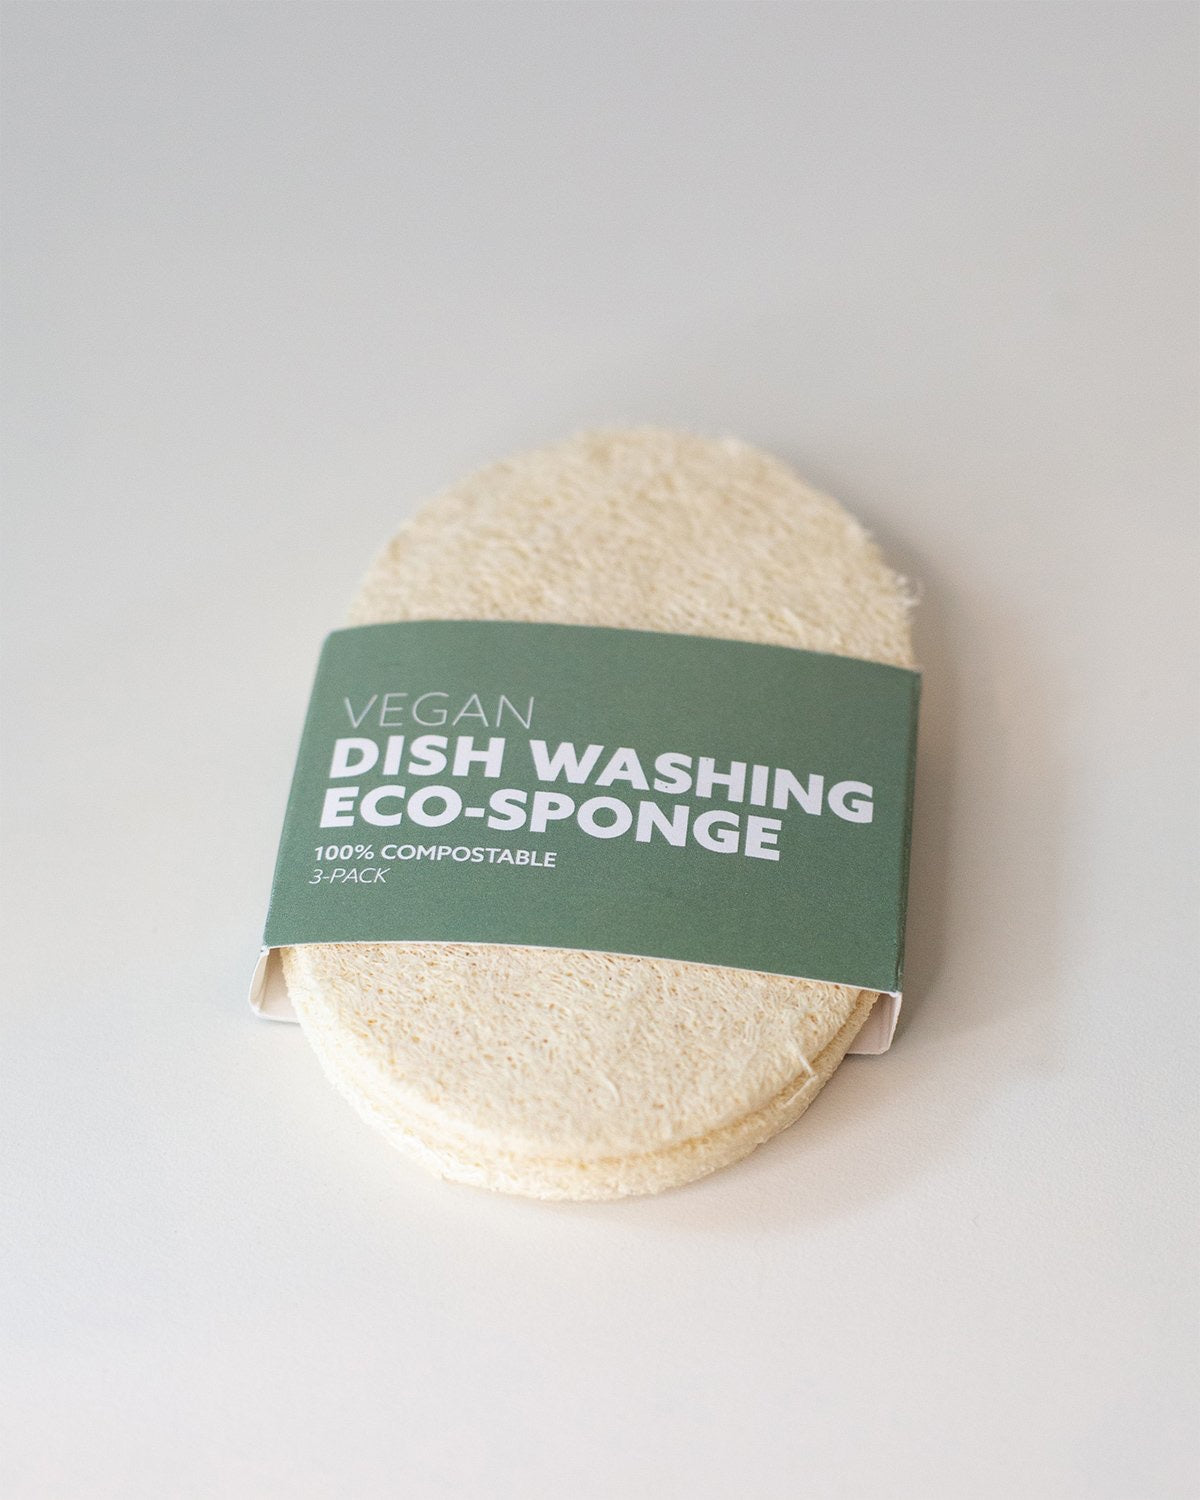 No Tox Life-Vegan Dishwashing Eco-Sponge